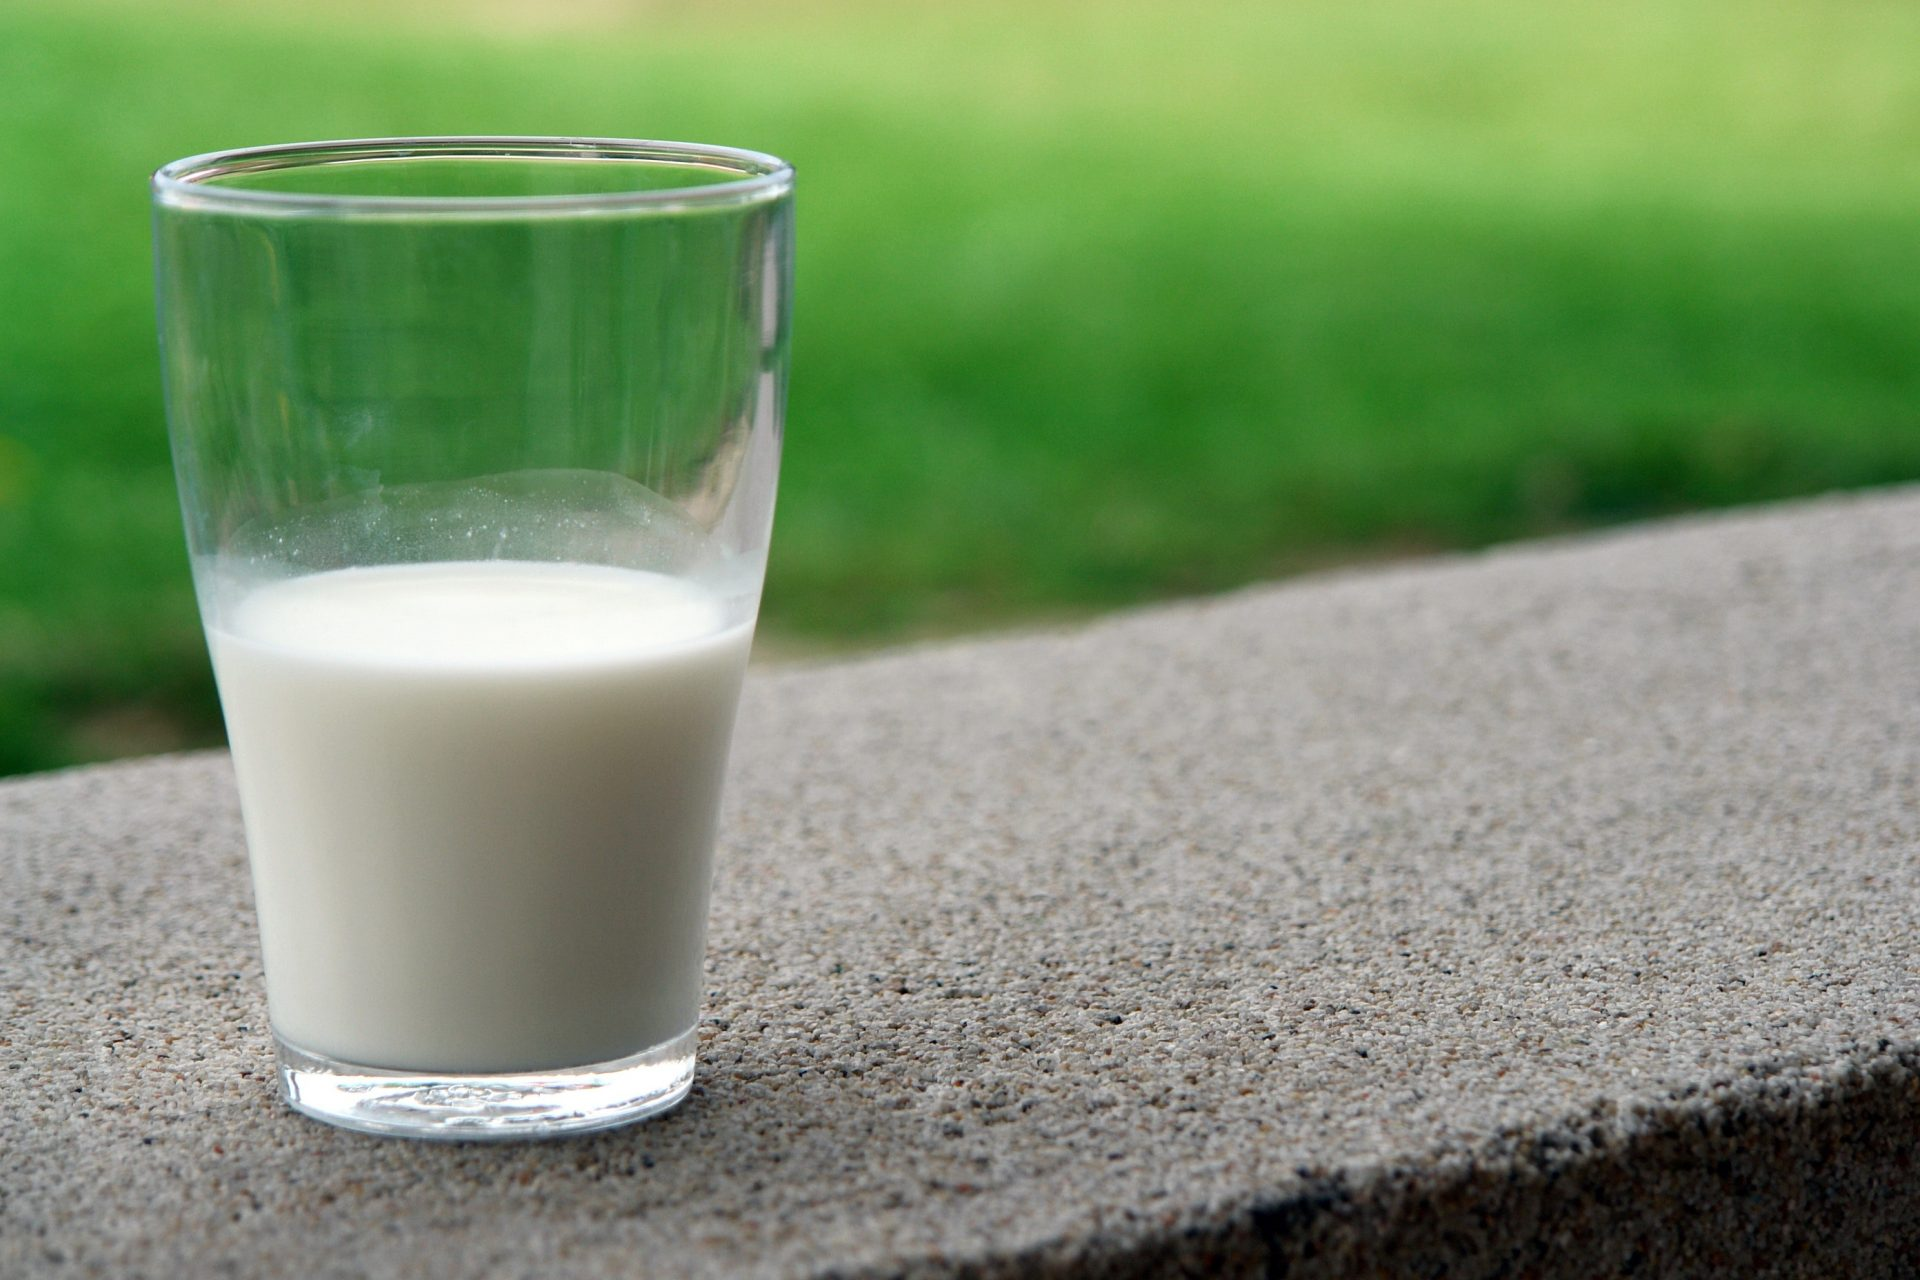 Milk lasts up to a week after its 'best-by' date if stored properly. Source: Eat By Date